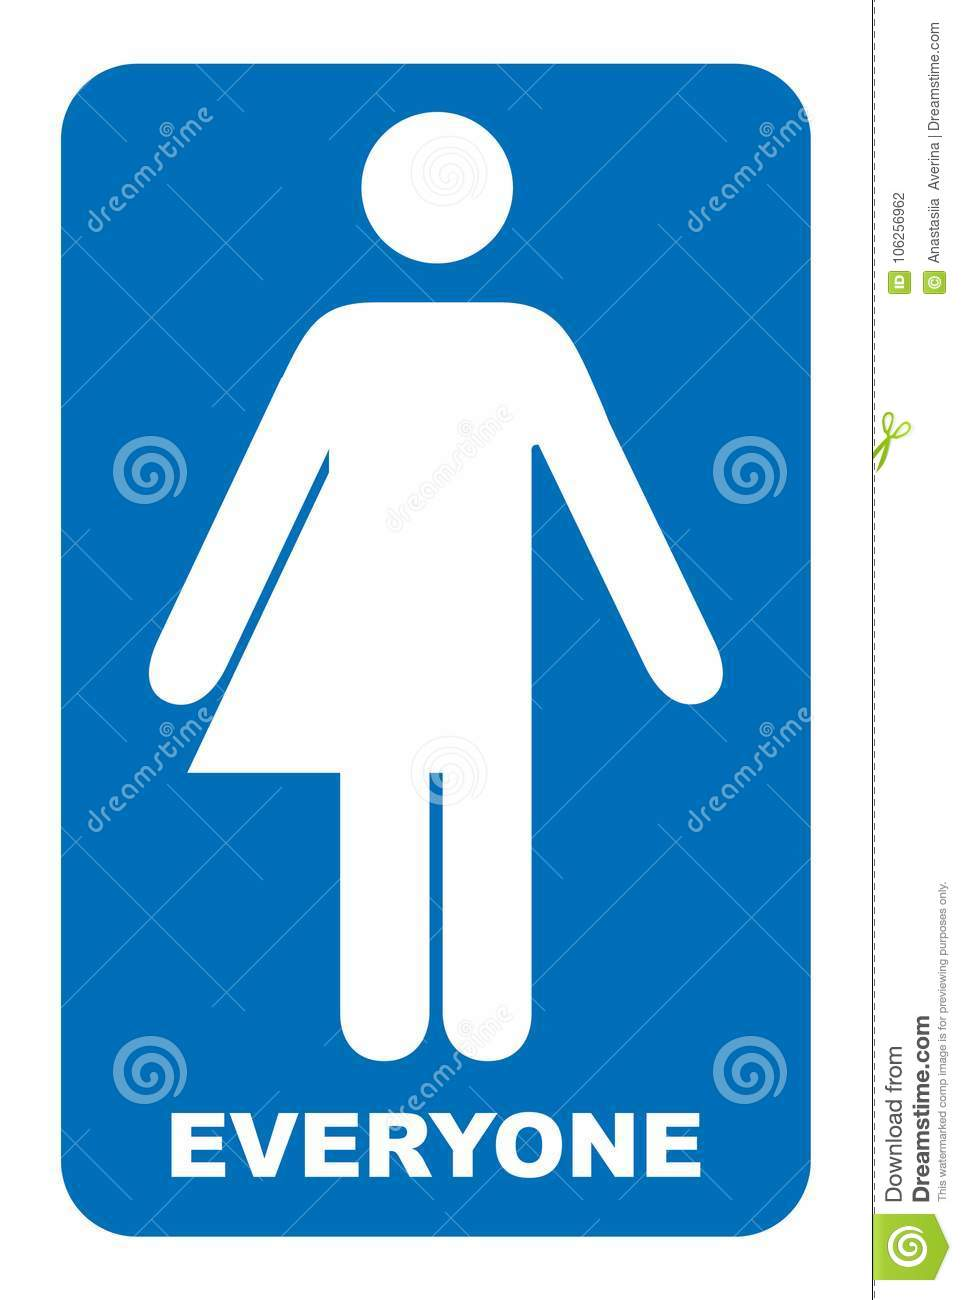 Transgender Cartoons Illustrations Vector Stock Images 1941 Pictures To Download From